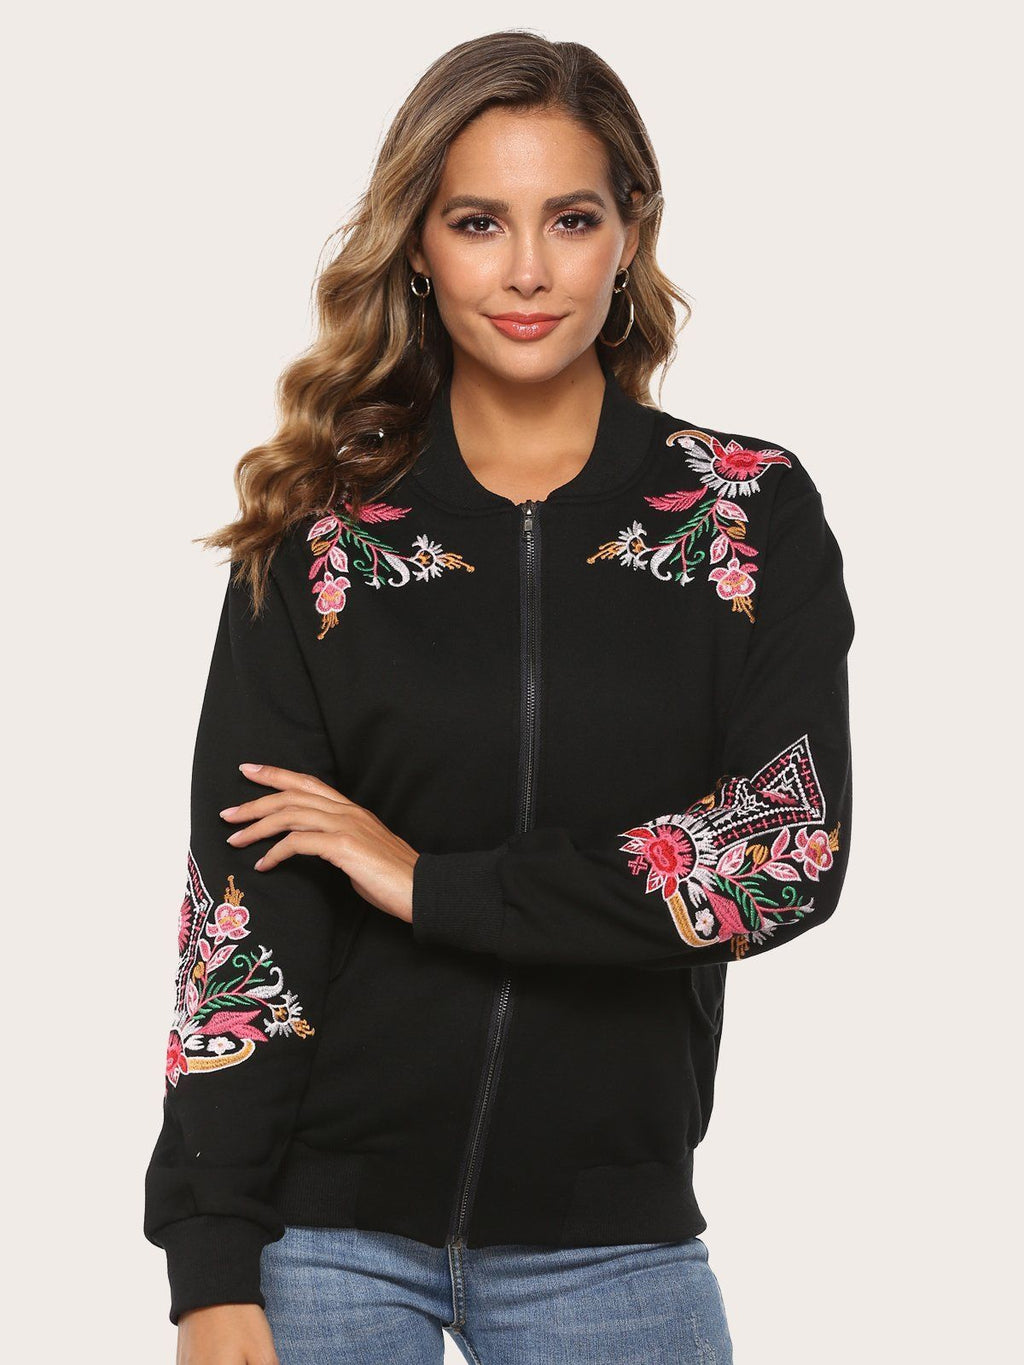 Floral Bohemian Embroidered Long Sleeve Zip Jackets Best Gifts for the Season & Christmas - Luckinchic - LuckinChic.com